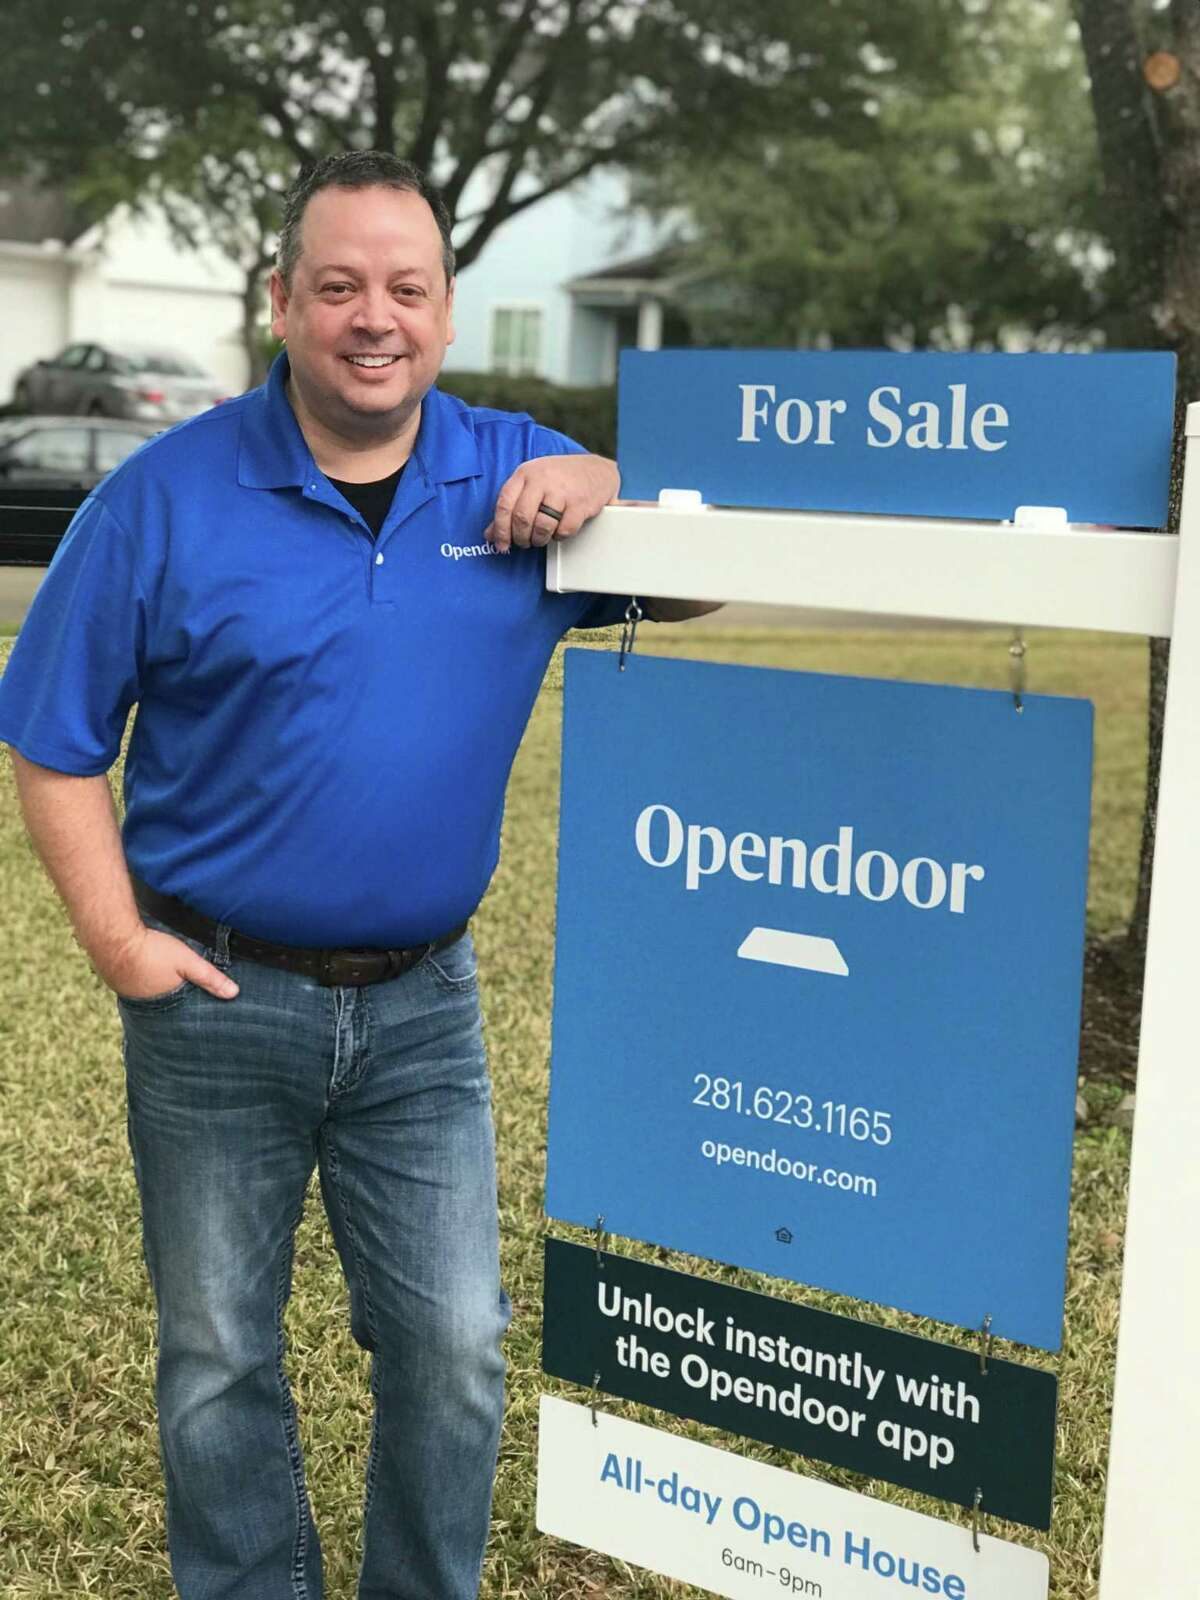 Jason Cline, Opendoor, has joined the online home buying companyas general manager of Opendoor Houston.